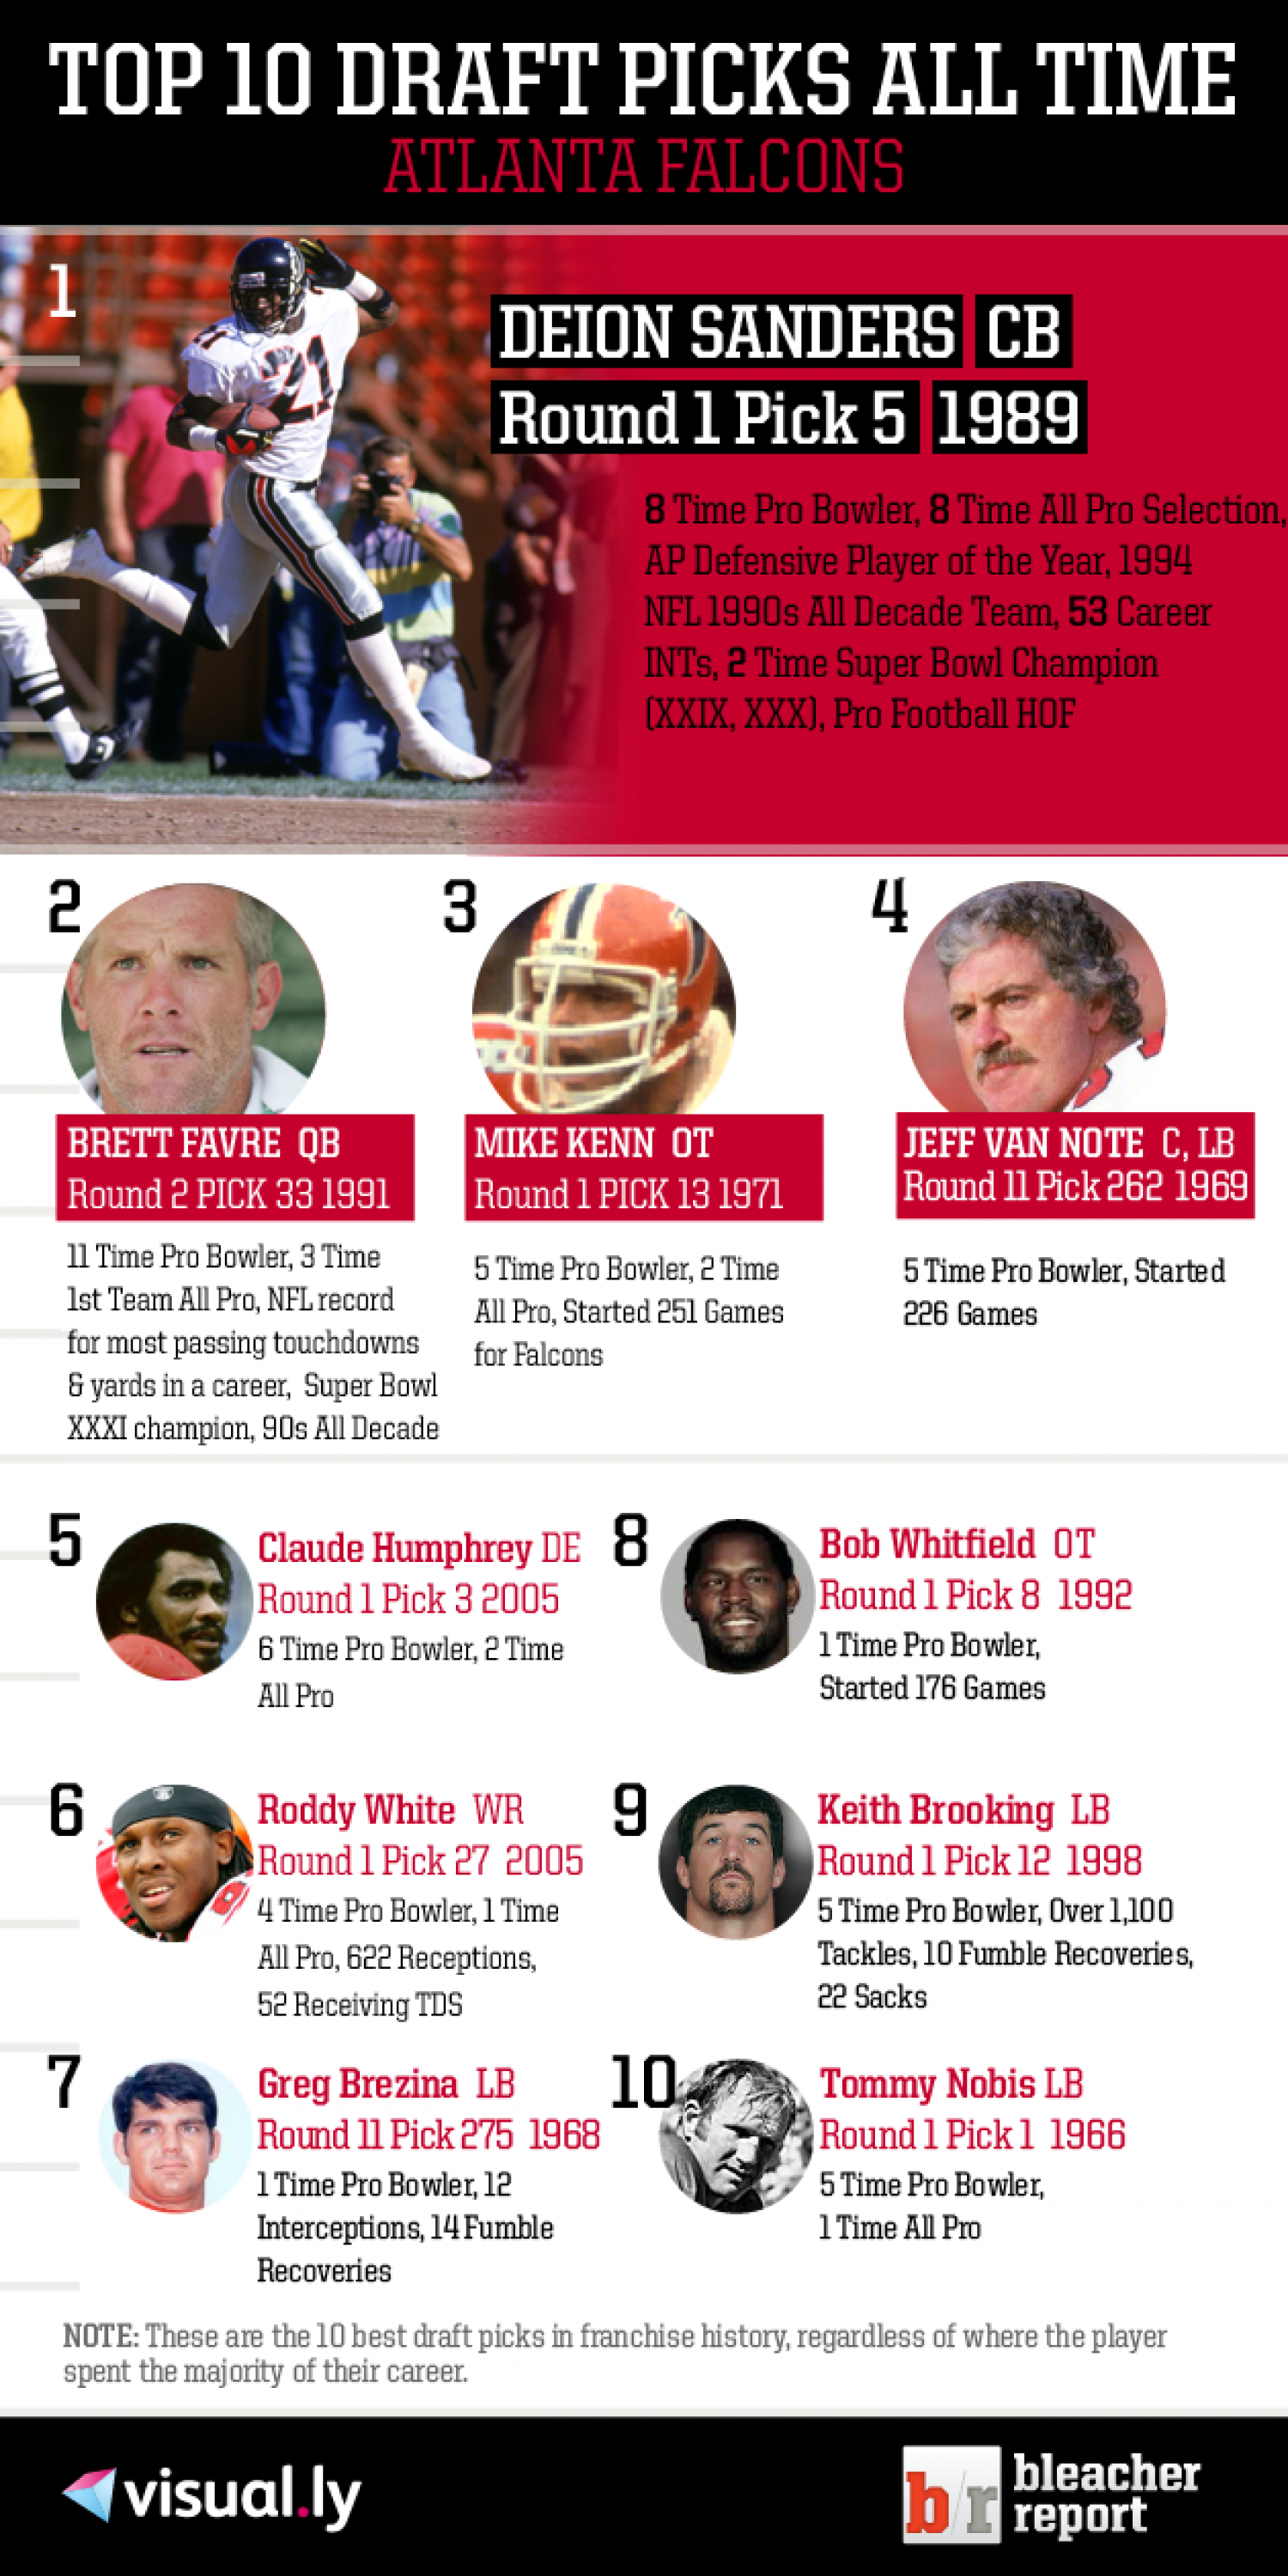 Top 10 Draft Picks of All Time: Atlanta Falcons Infographic